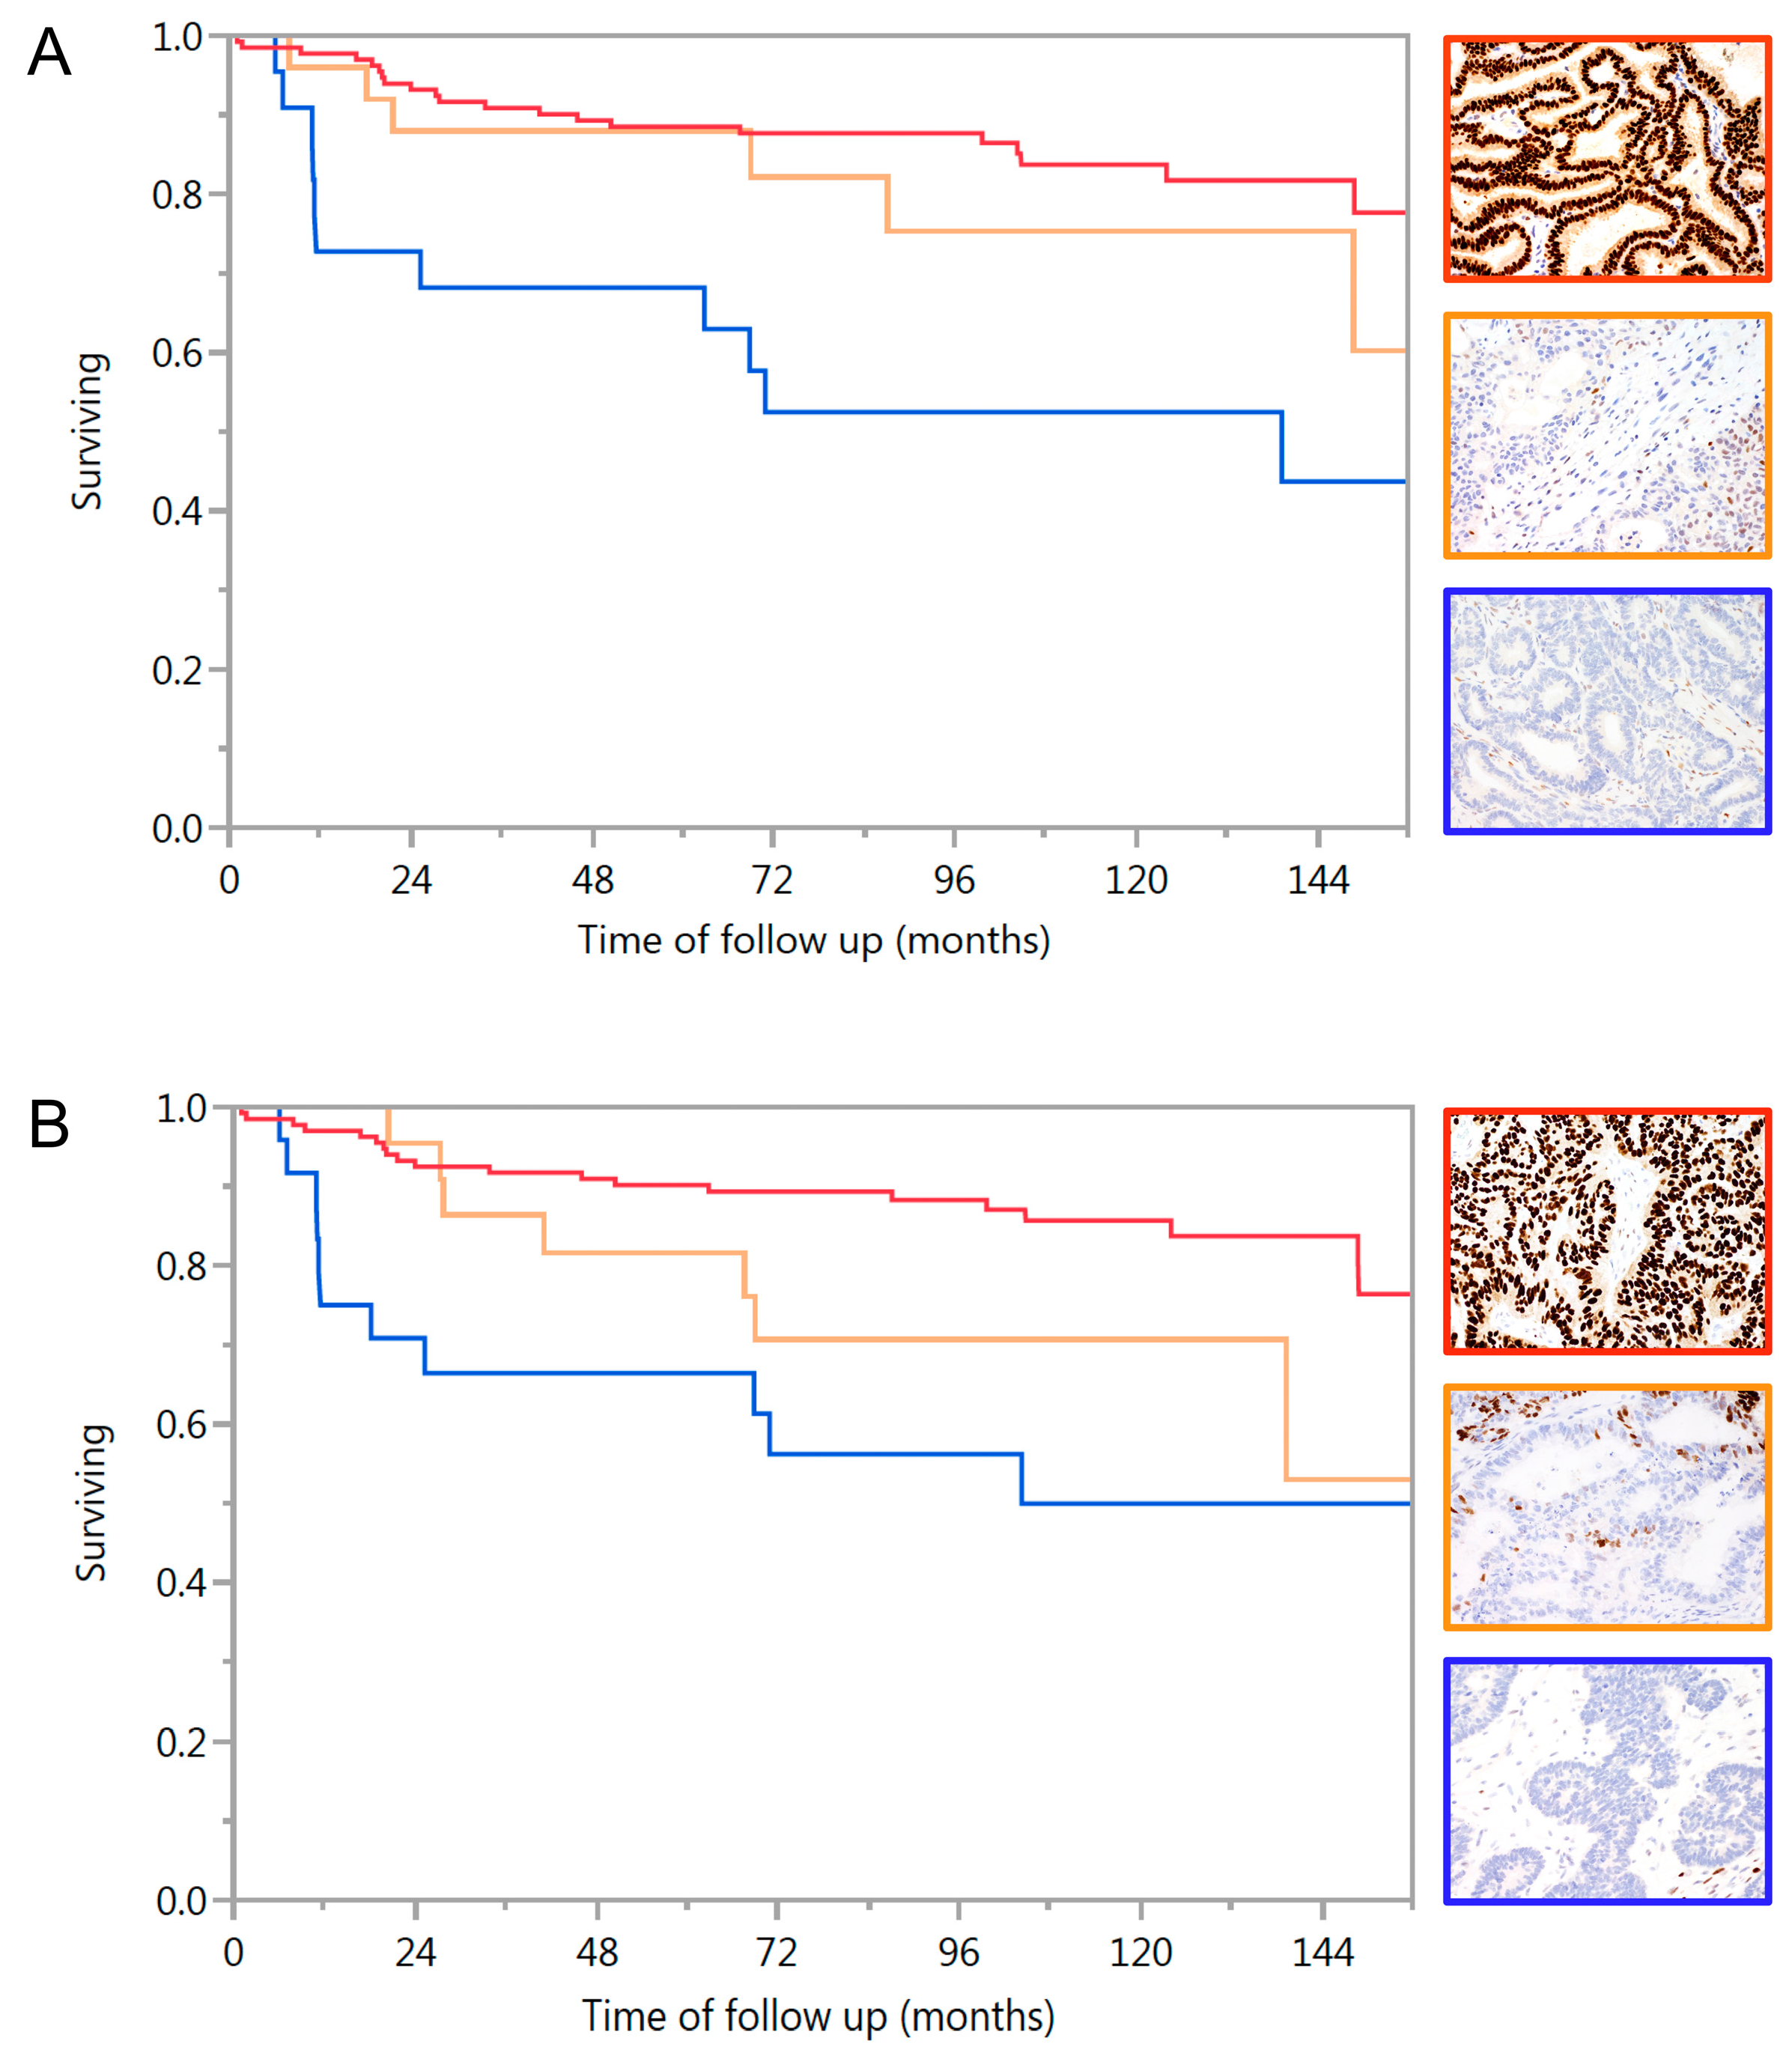 Ijms Free Full Text Association Of Hormone Receptor Expression With Survival In Ovarian Endometrioid Carcinoma Biological Validation And Clinical Implications Html